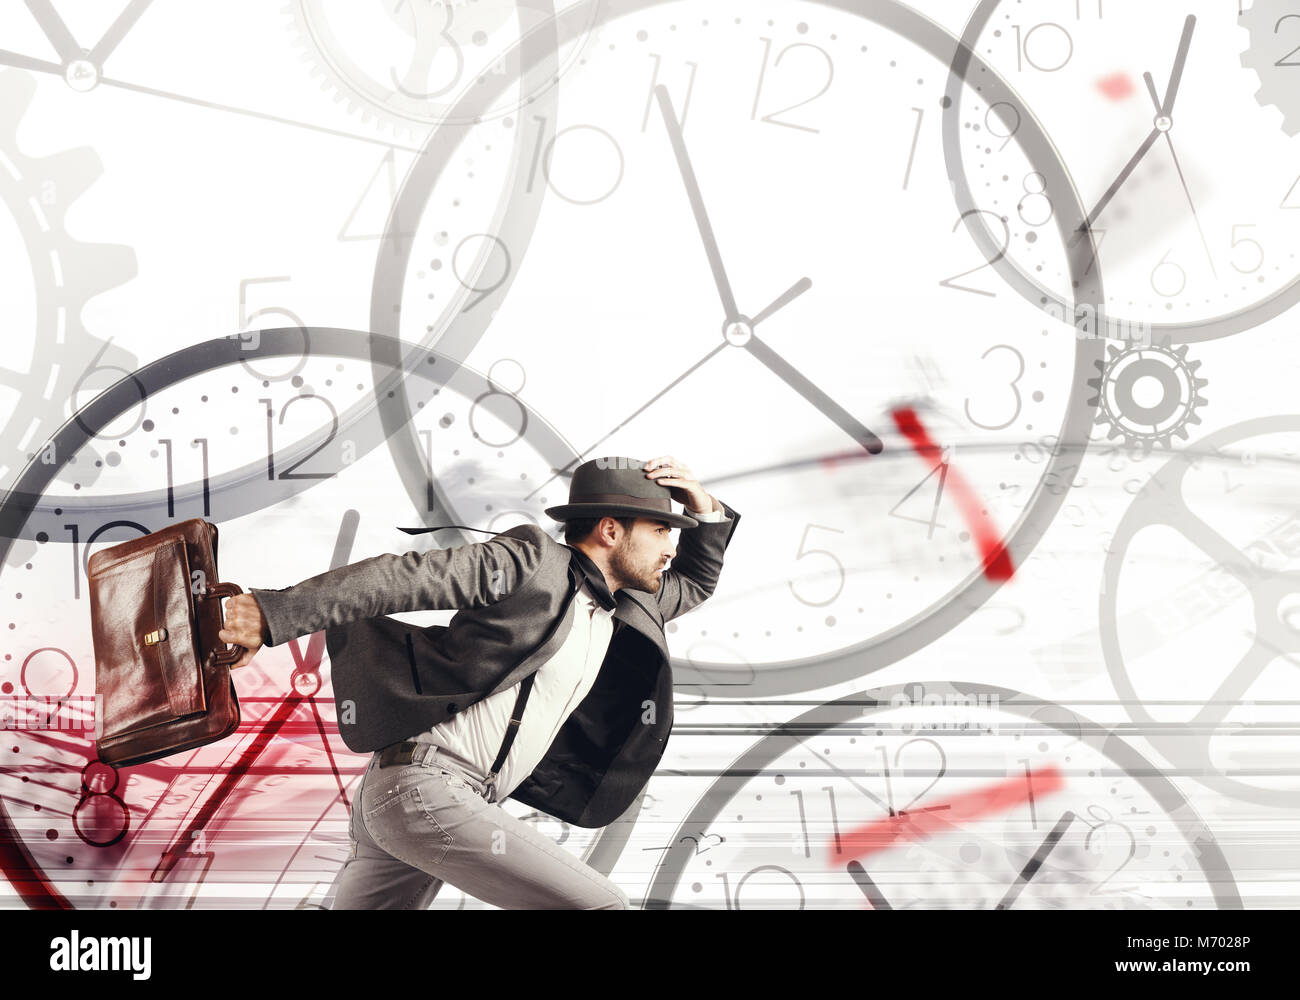 Race against time to meet the deadlines - Stock Image